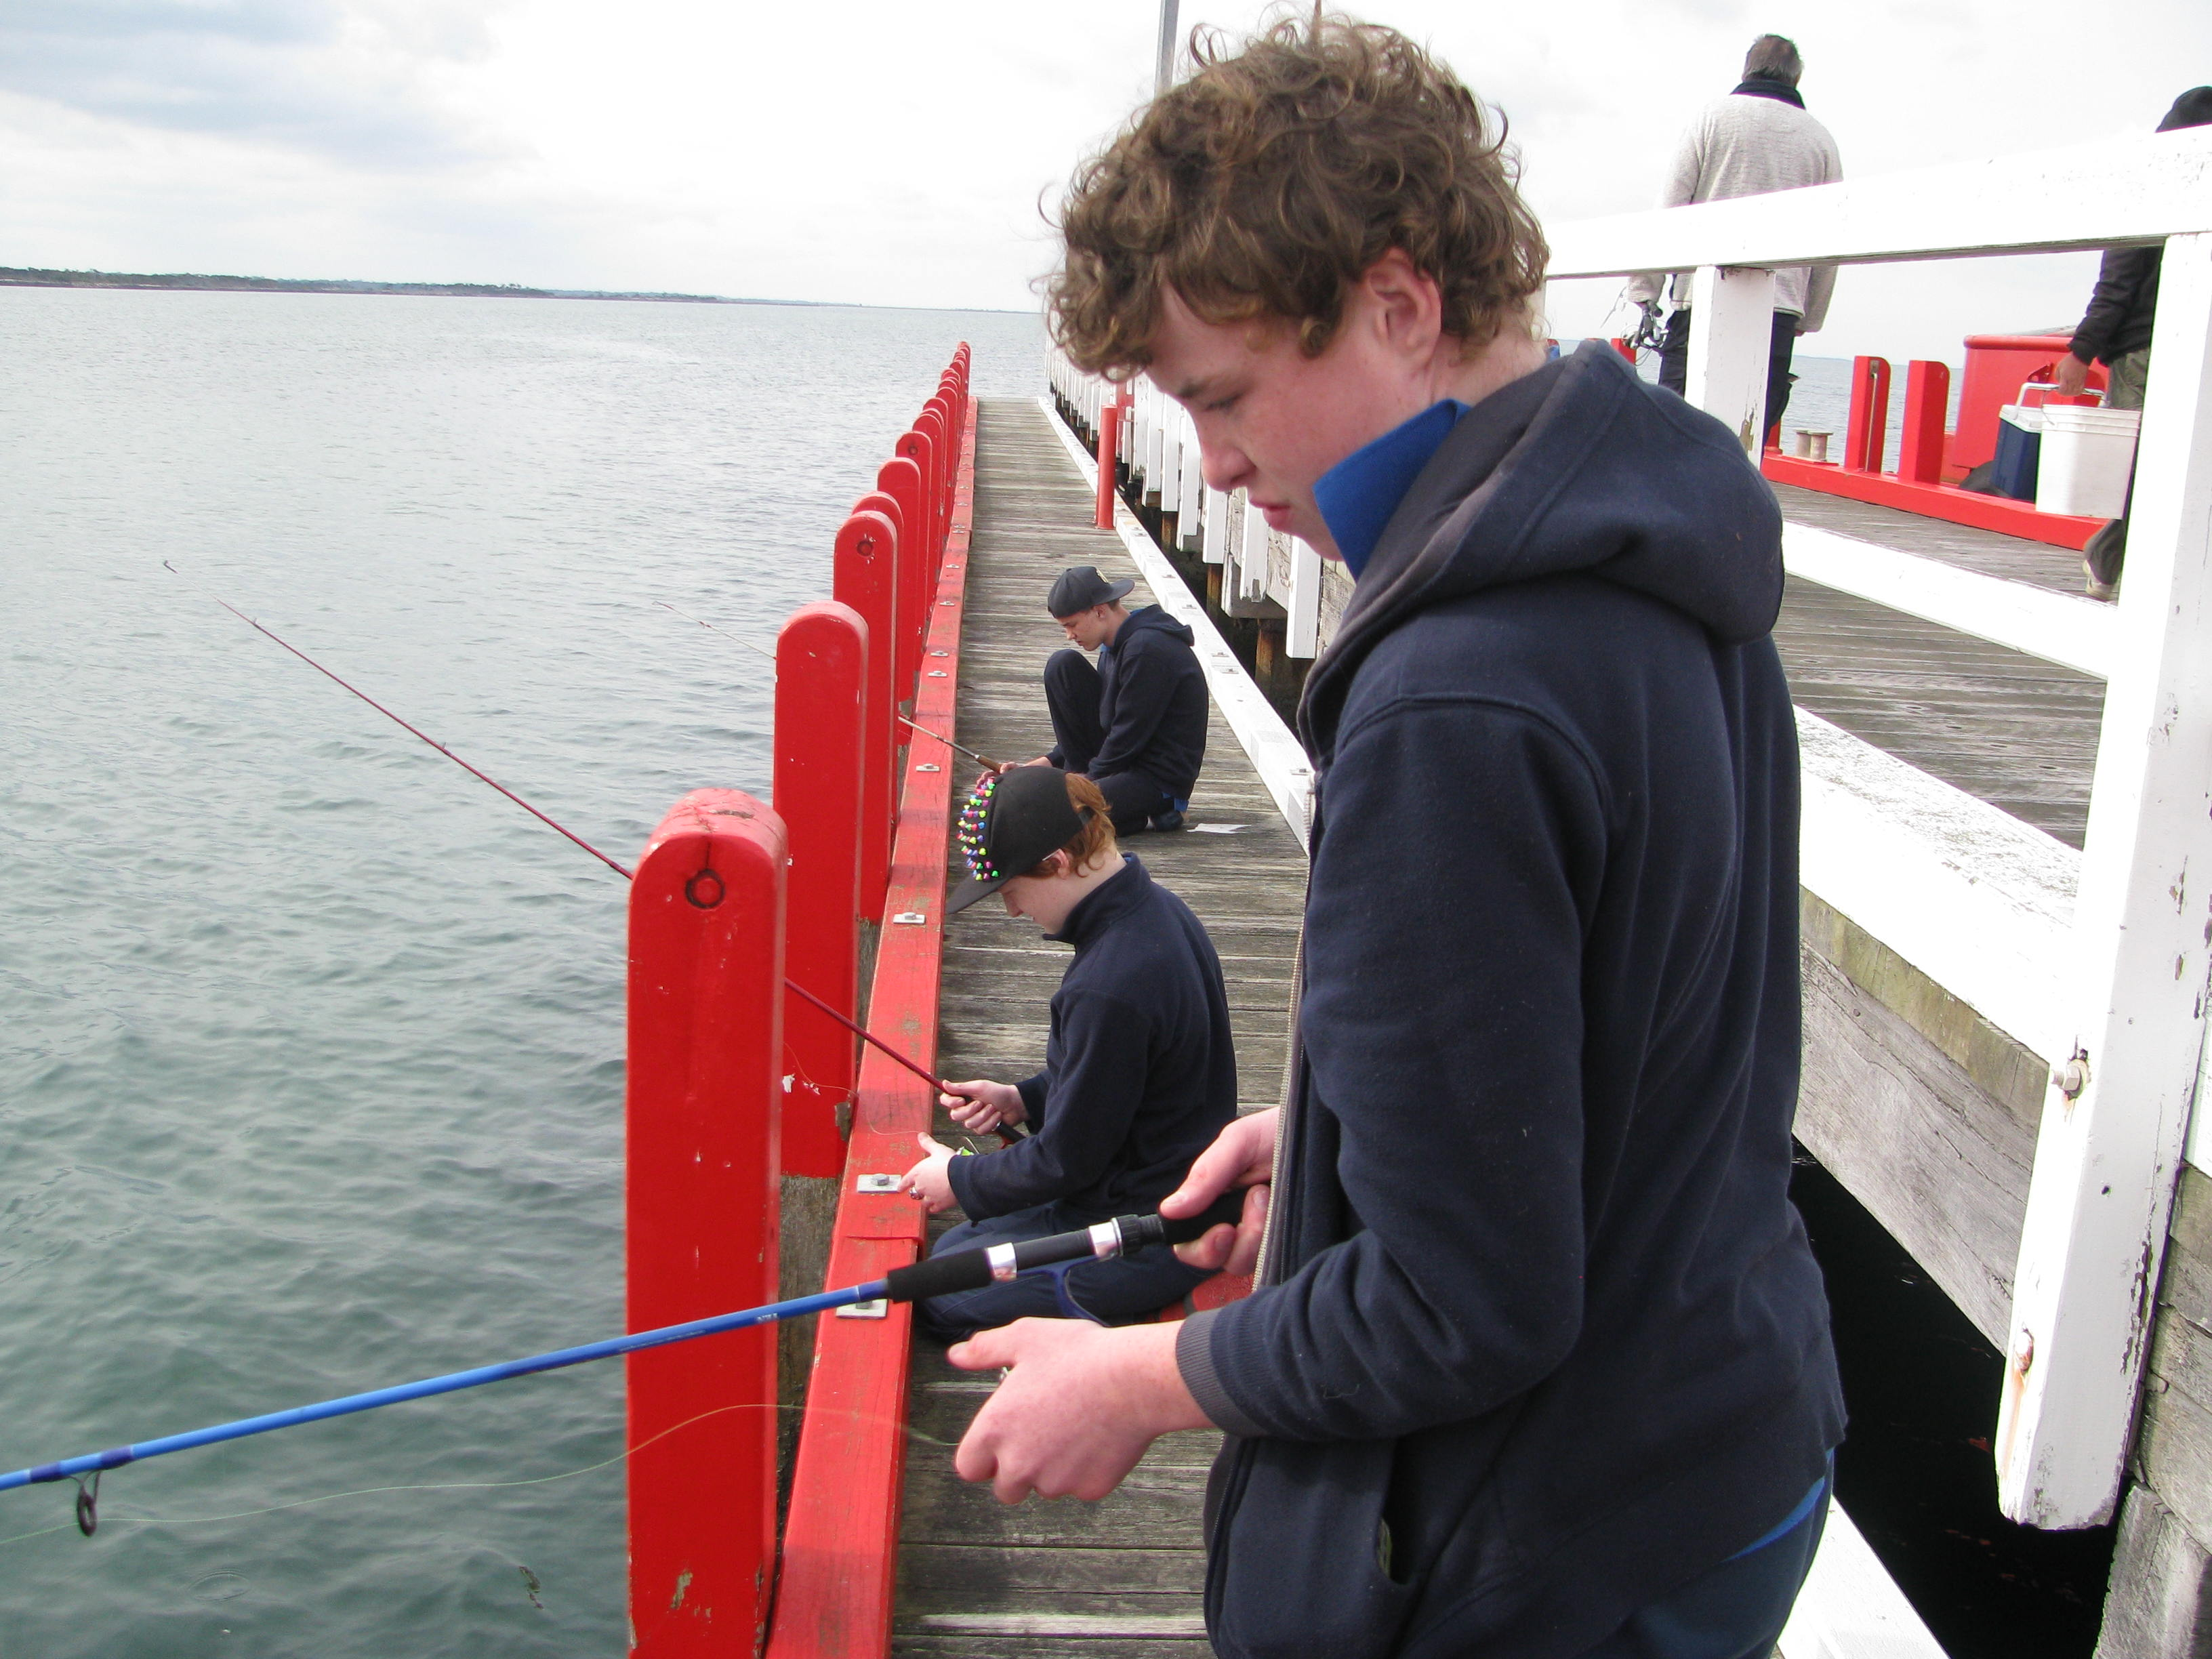 Students from the South Gippsland Special School trying their luck at fishing off the Port Welshpool jetty